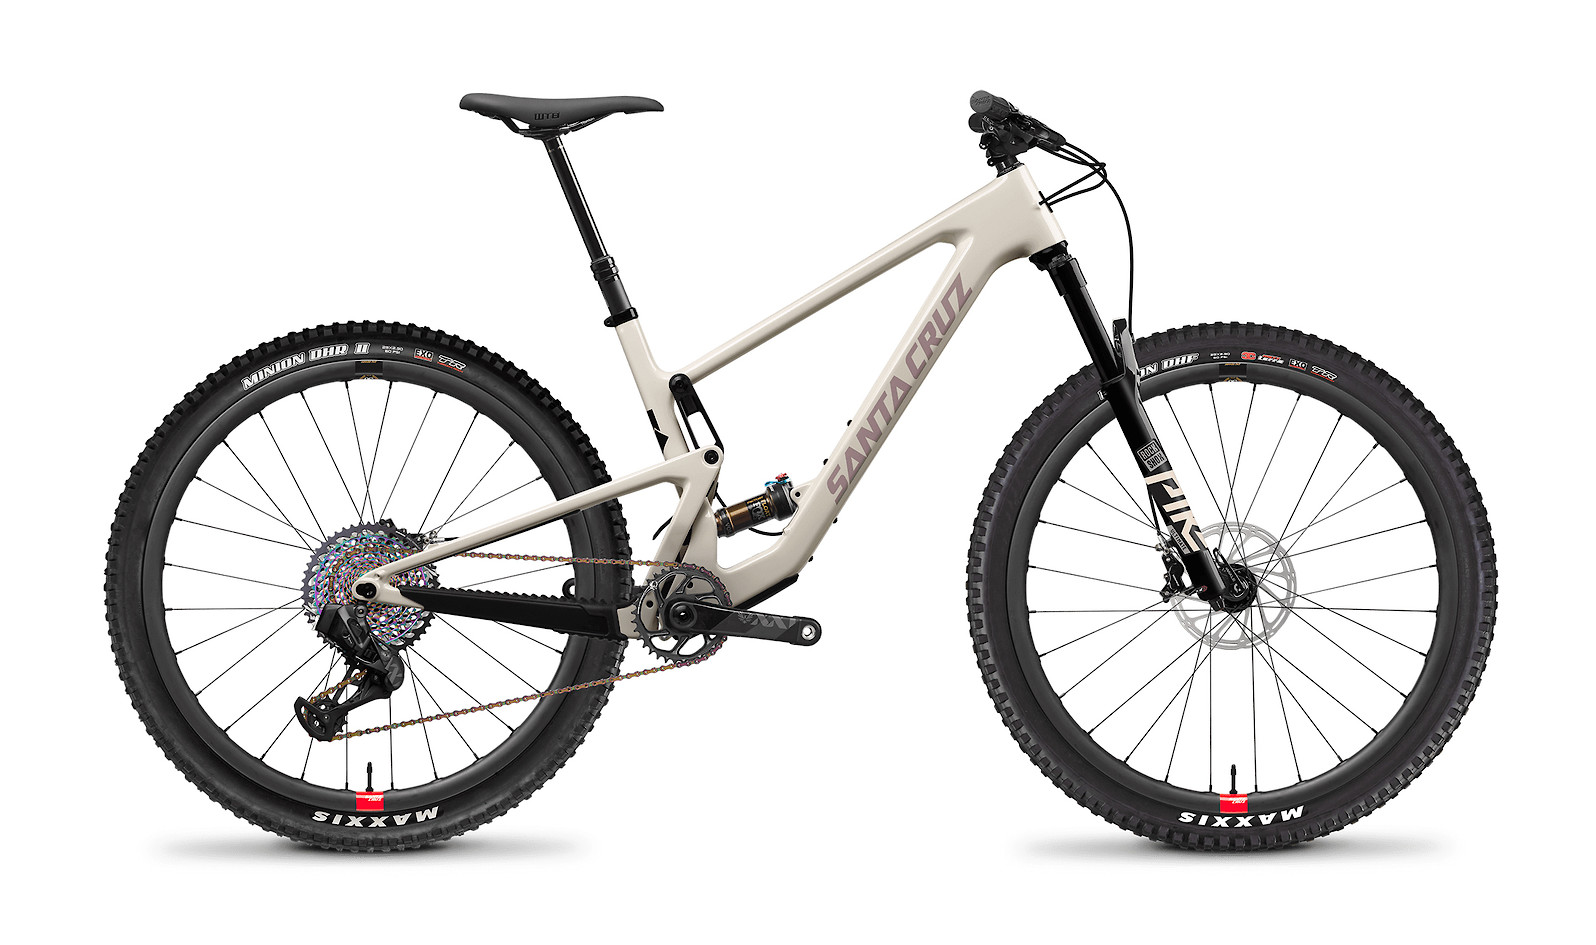 2021 Santa Cruz Tallboy Carbon CC - Ivory and Gypsum